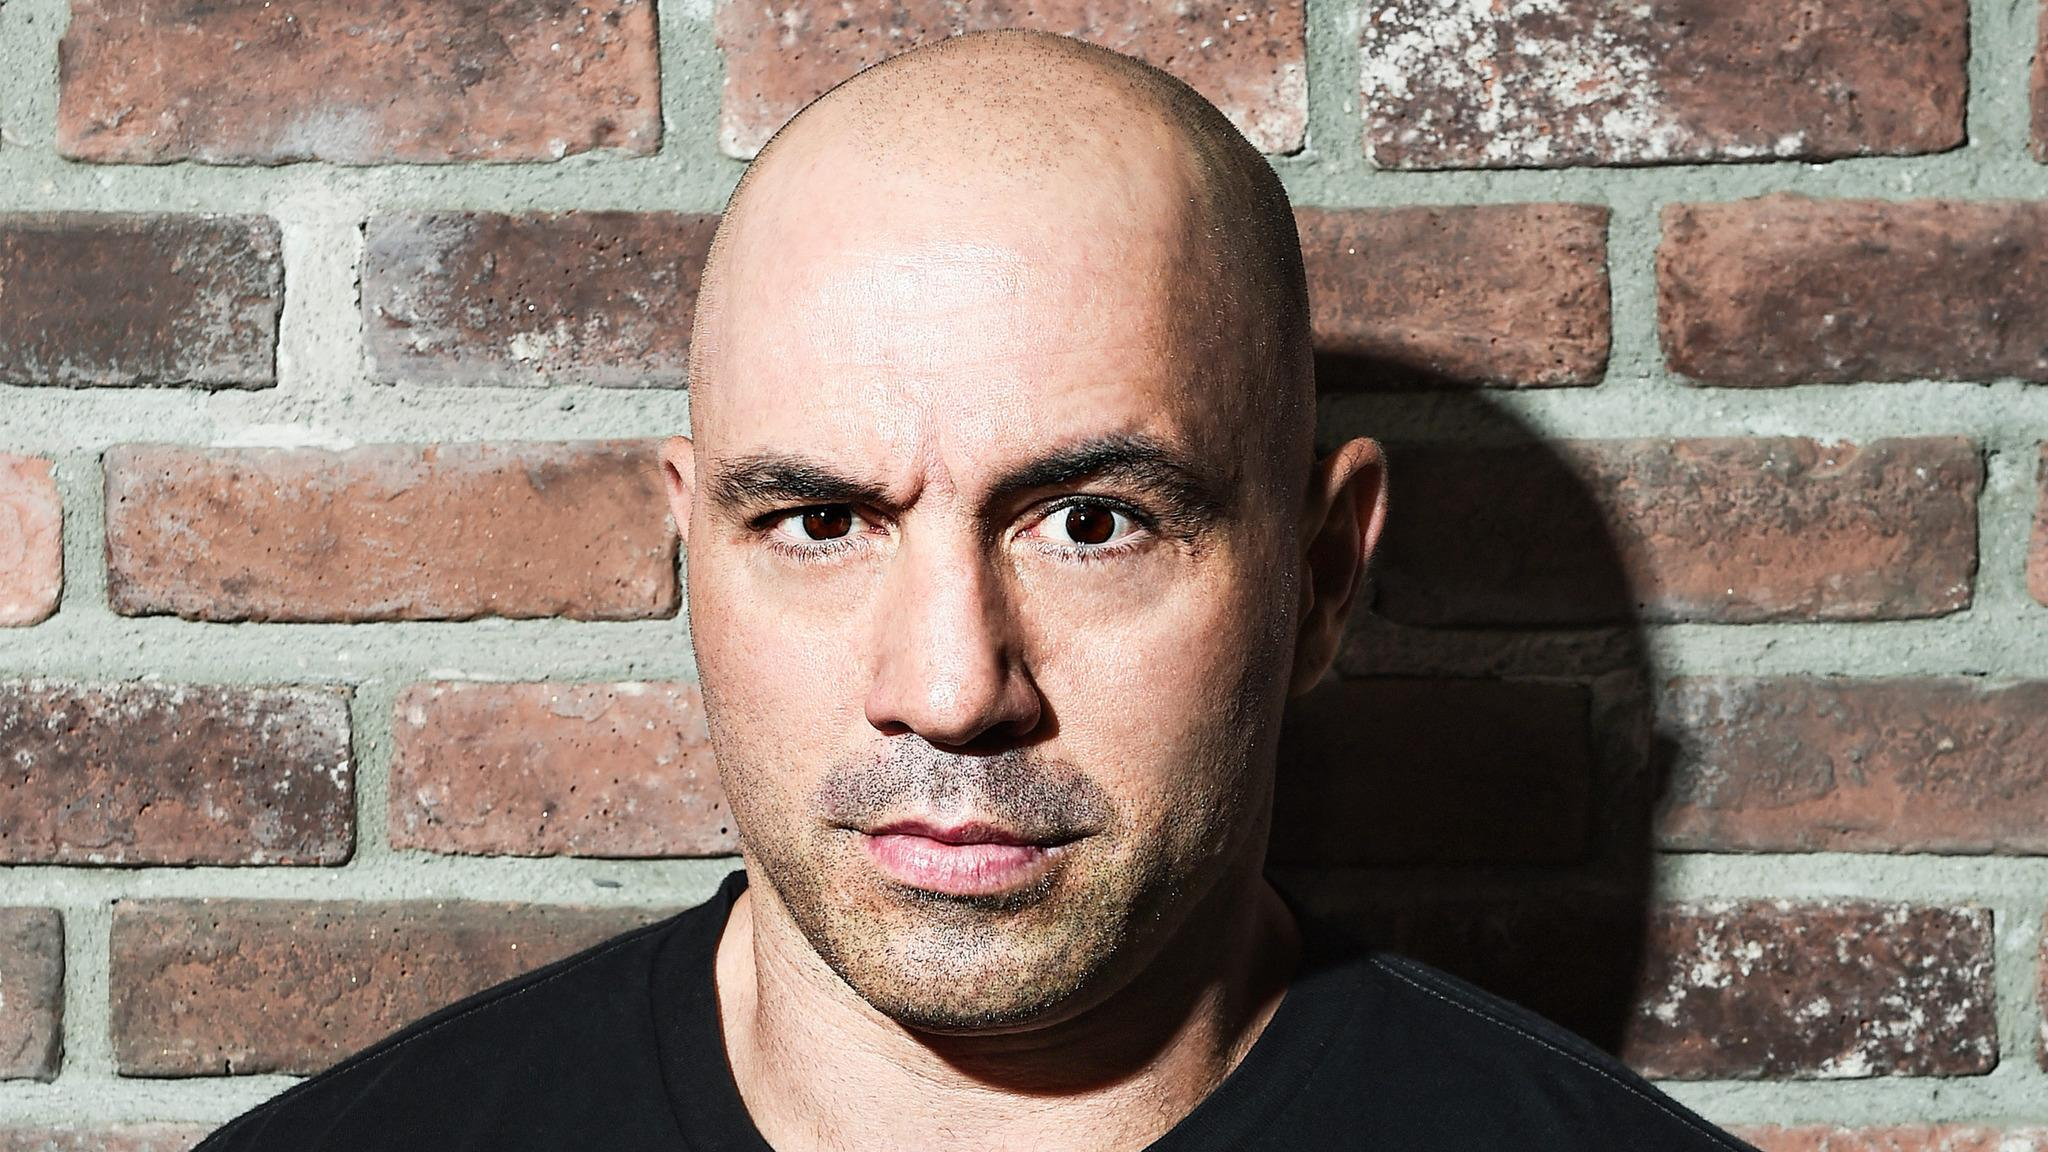 Joe Rogan: The Sacred Clown Tour at BOK Center